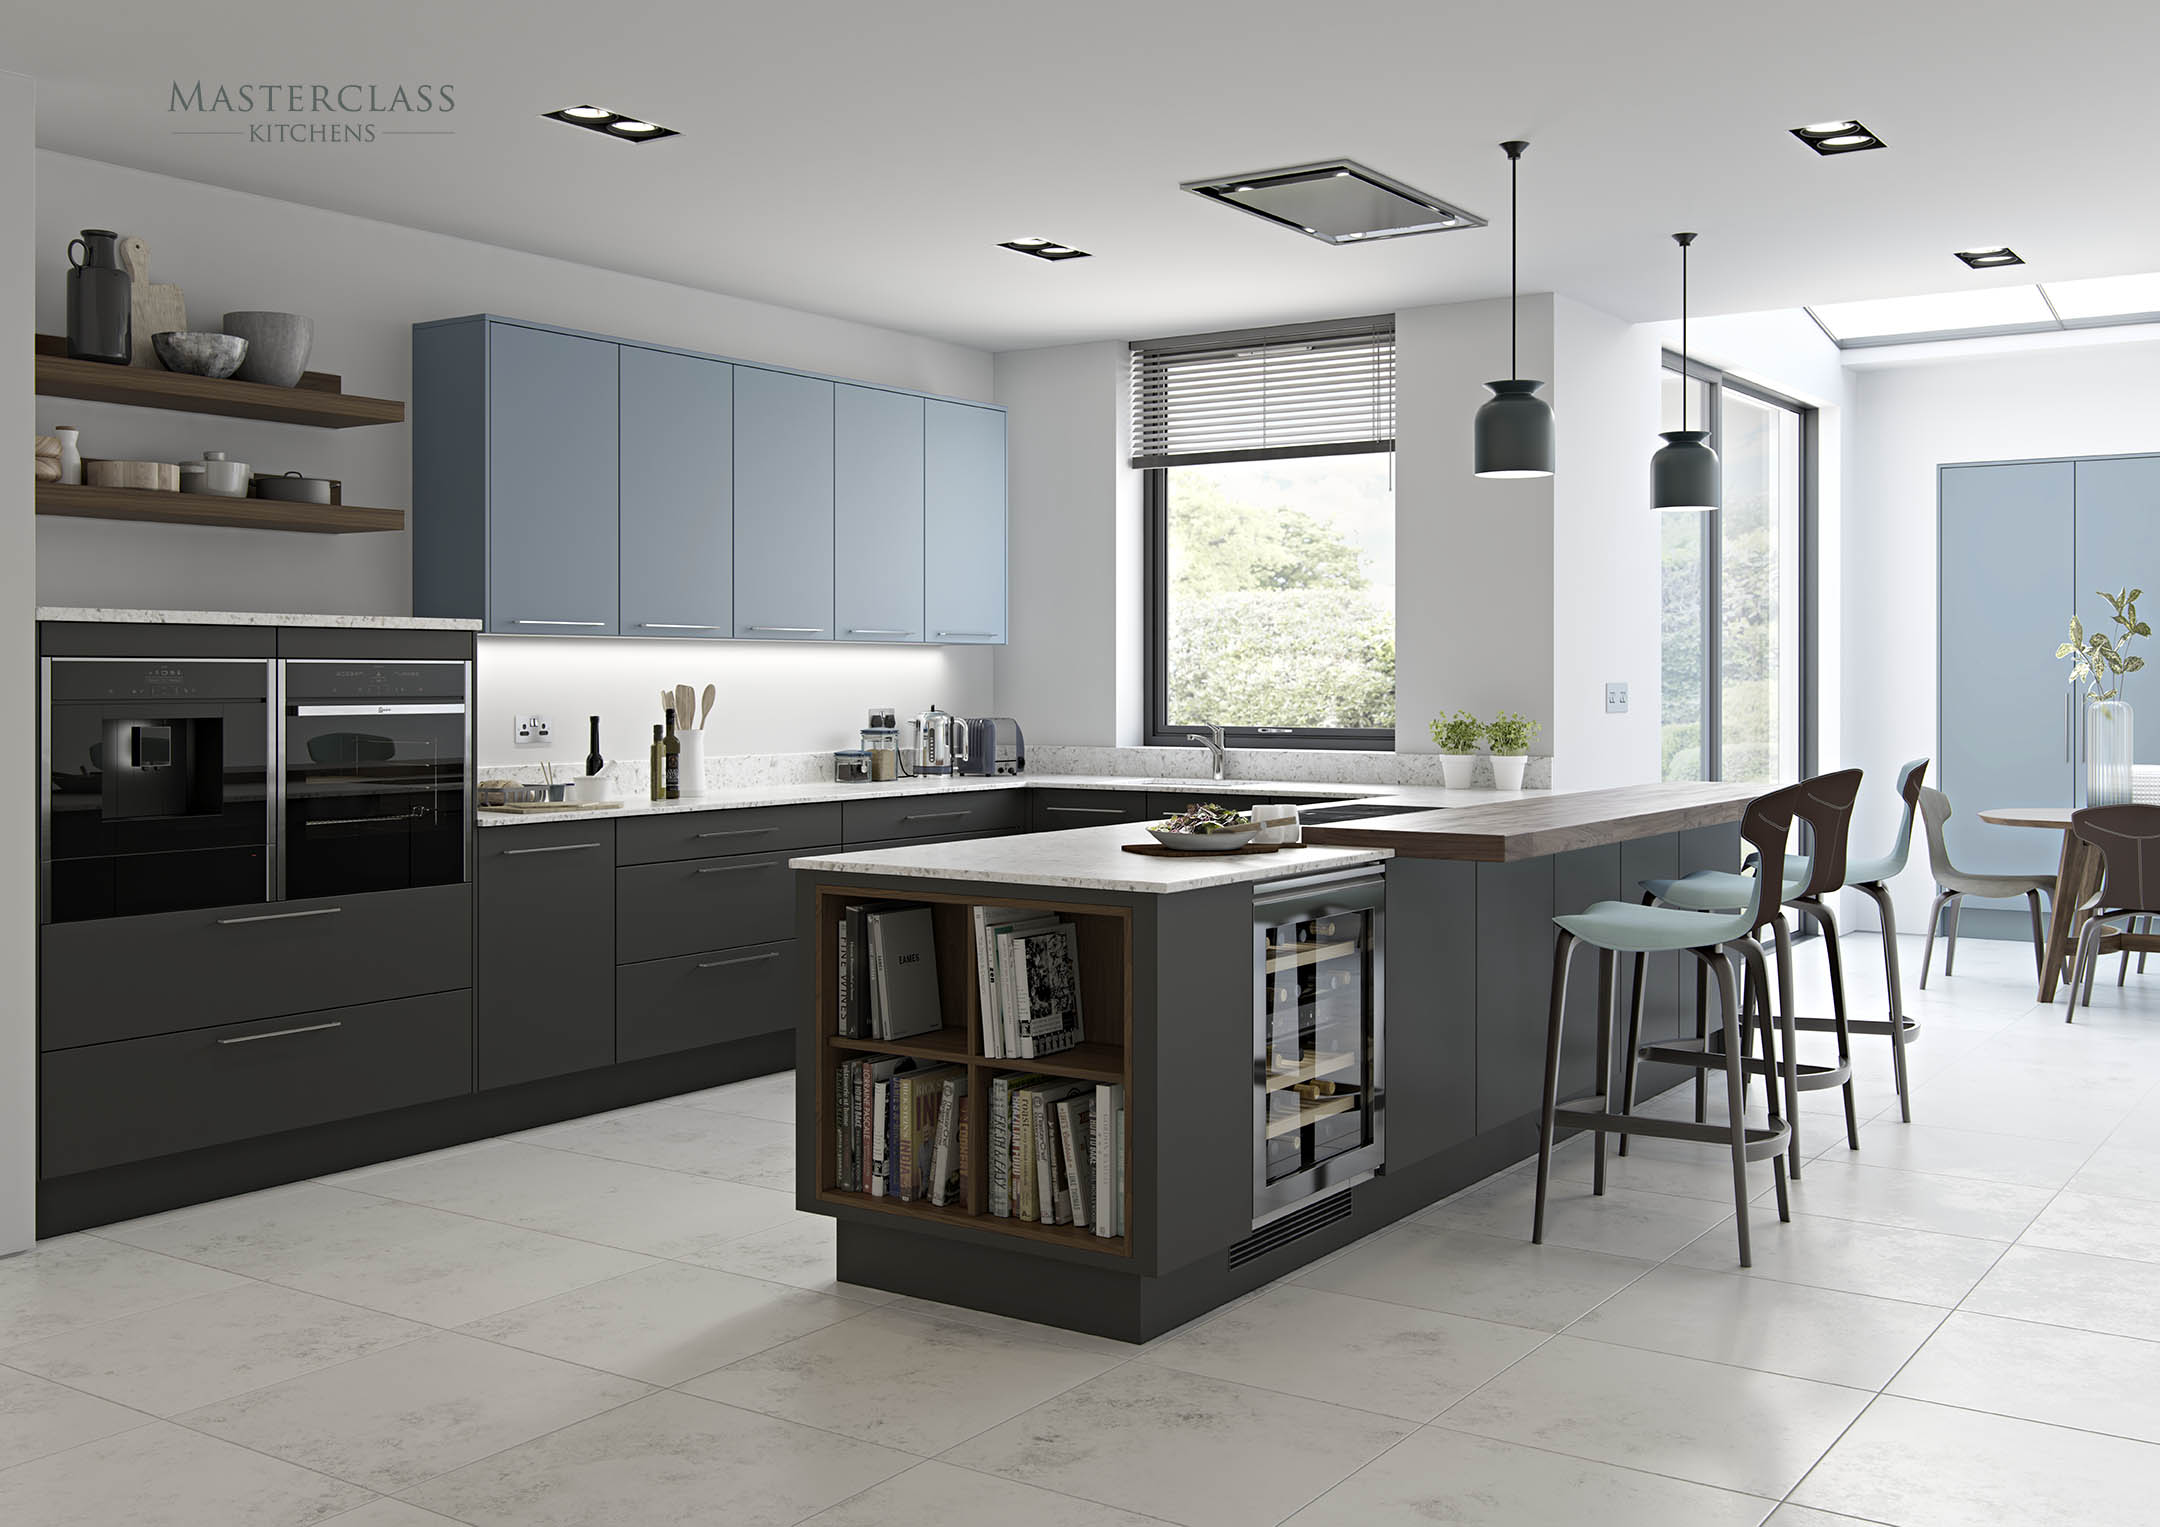 Exceptional Give Your Sussex Kitchen A Silk Make Over With Russ Deacon U0026 Masterclass  Kitchens